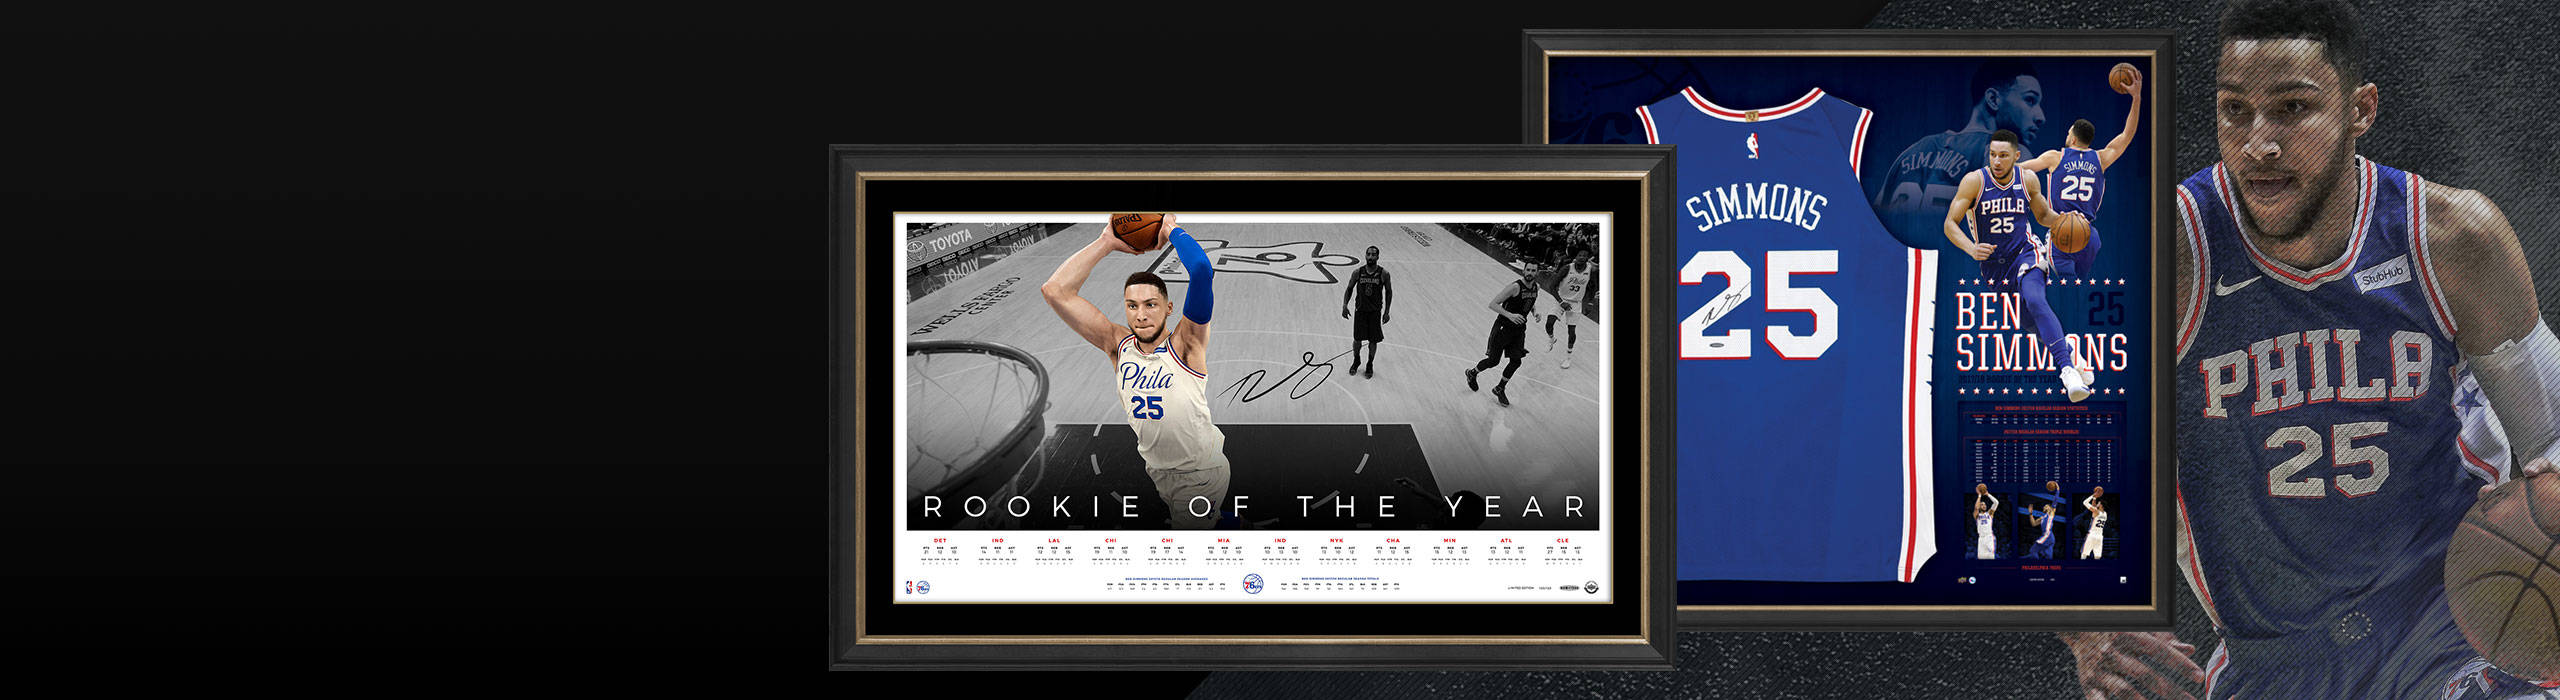 BEN SIMMONS ROOKIE OF THE YEAR